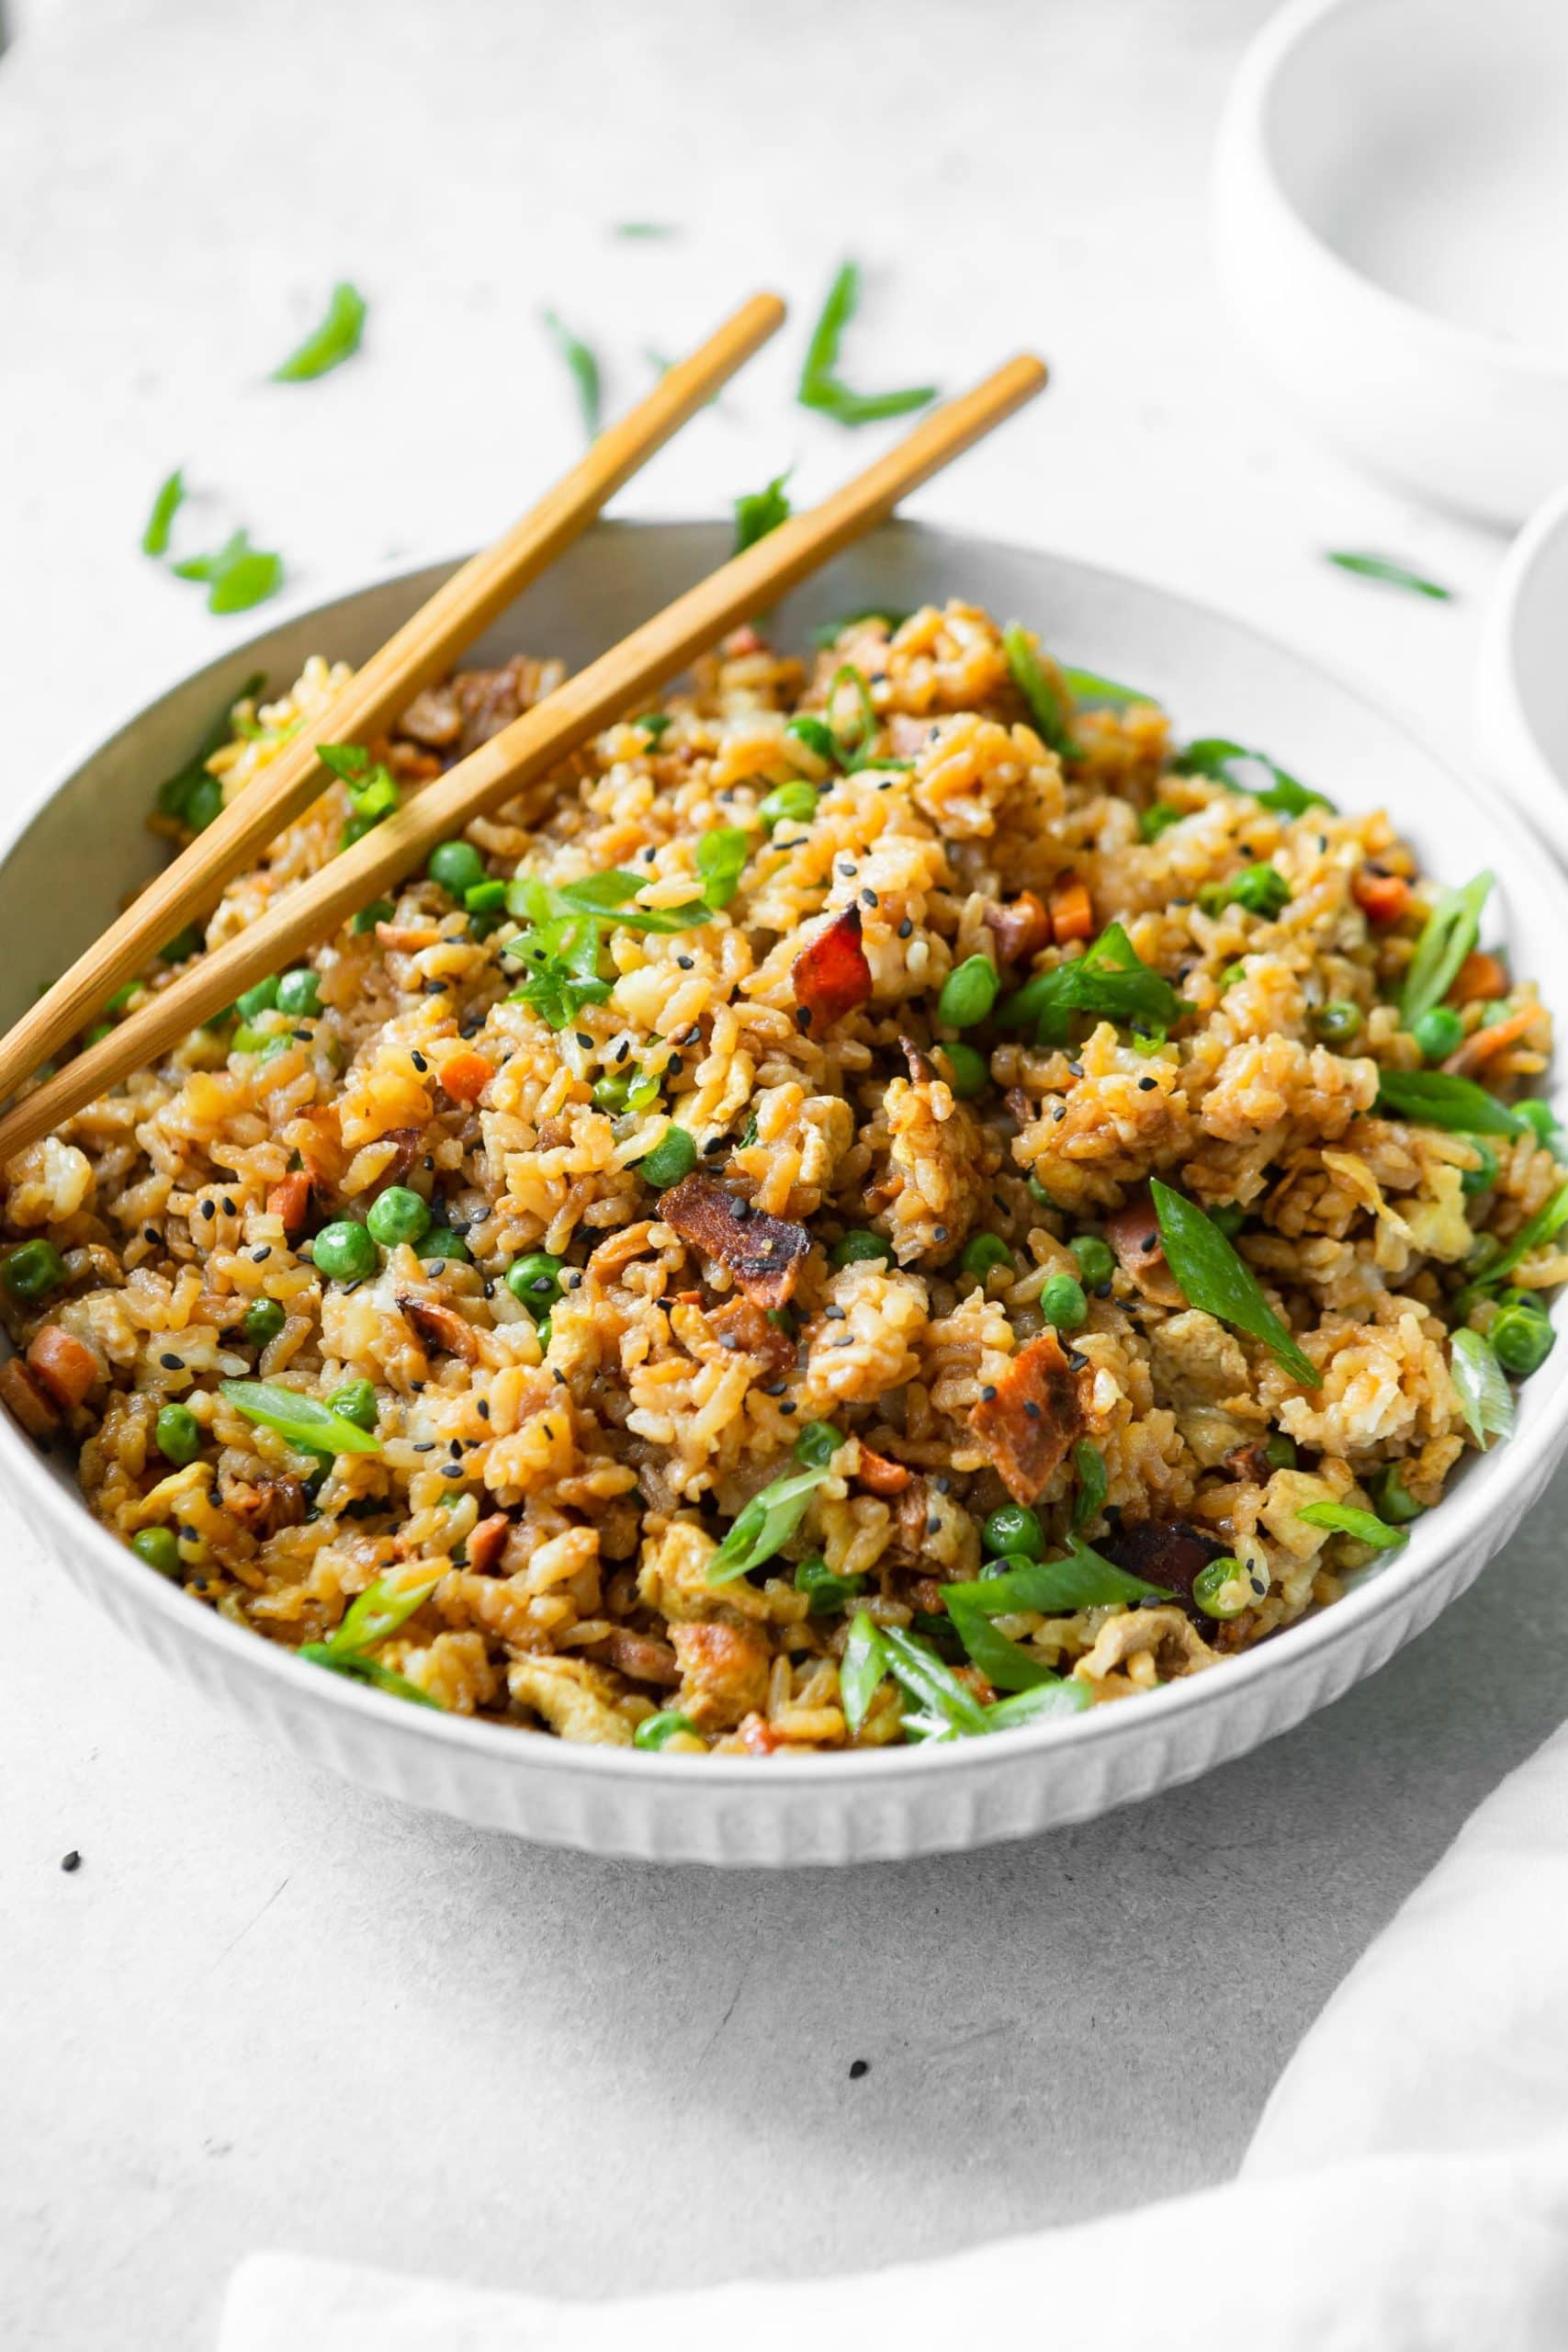 a large bowl of bacon fried rice with carrots, peas and chopsticks for fun!